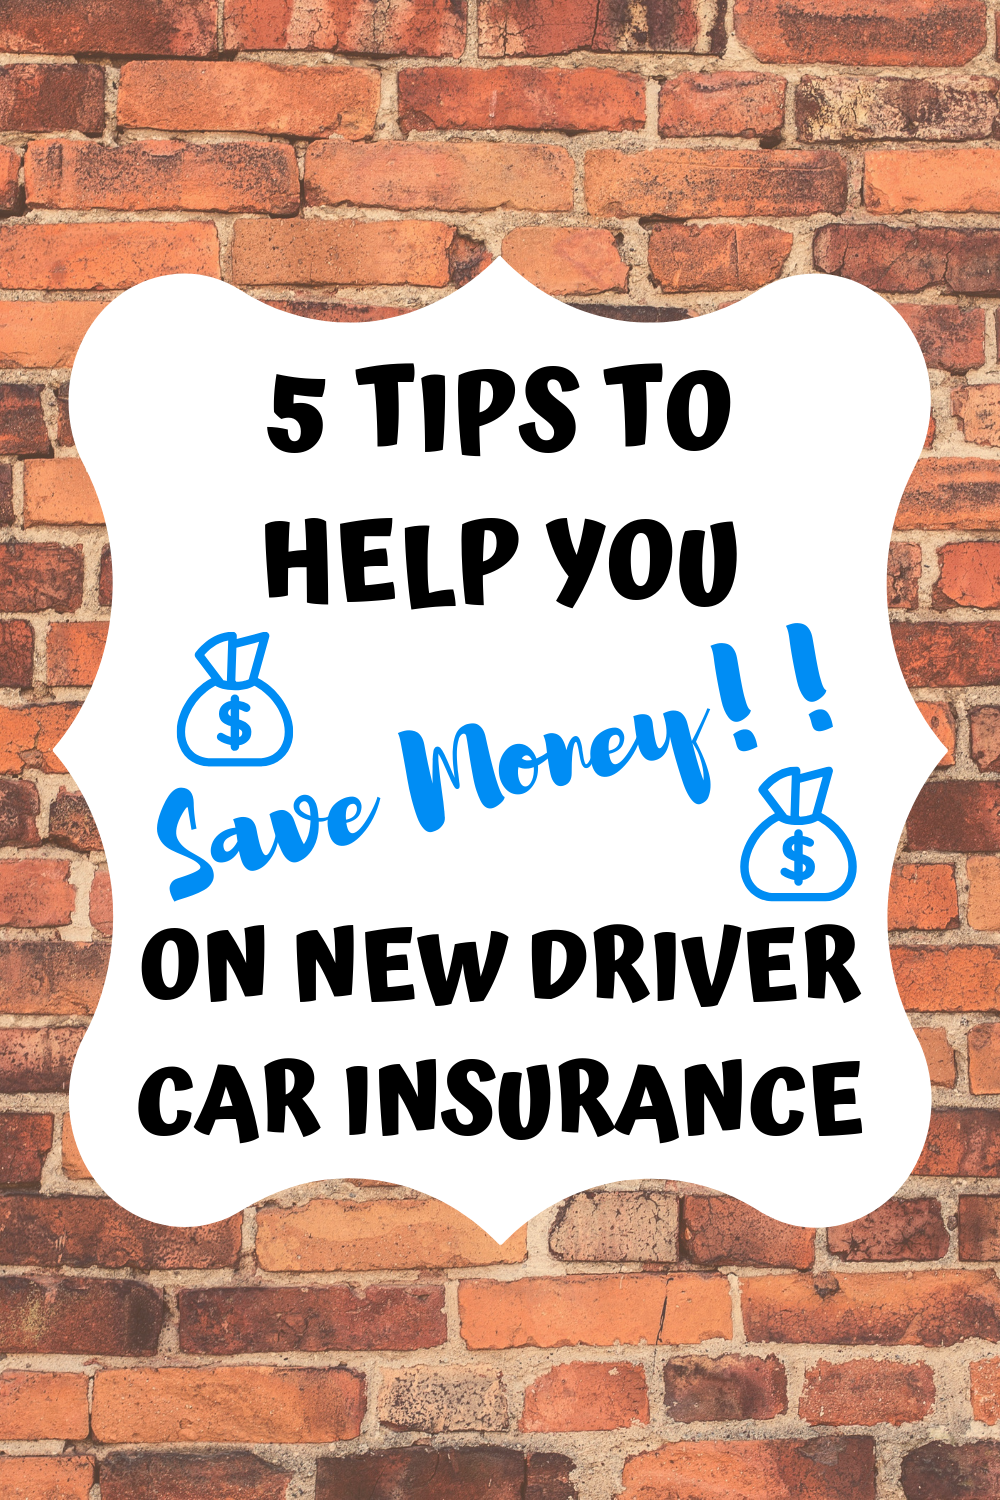 Terrific Photo Save Money On New Driver Car Insurance Thoughts In